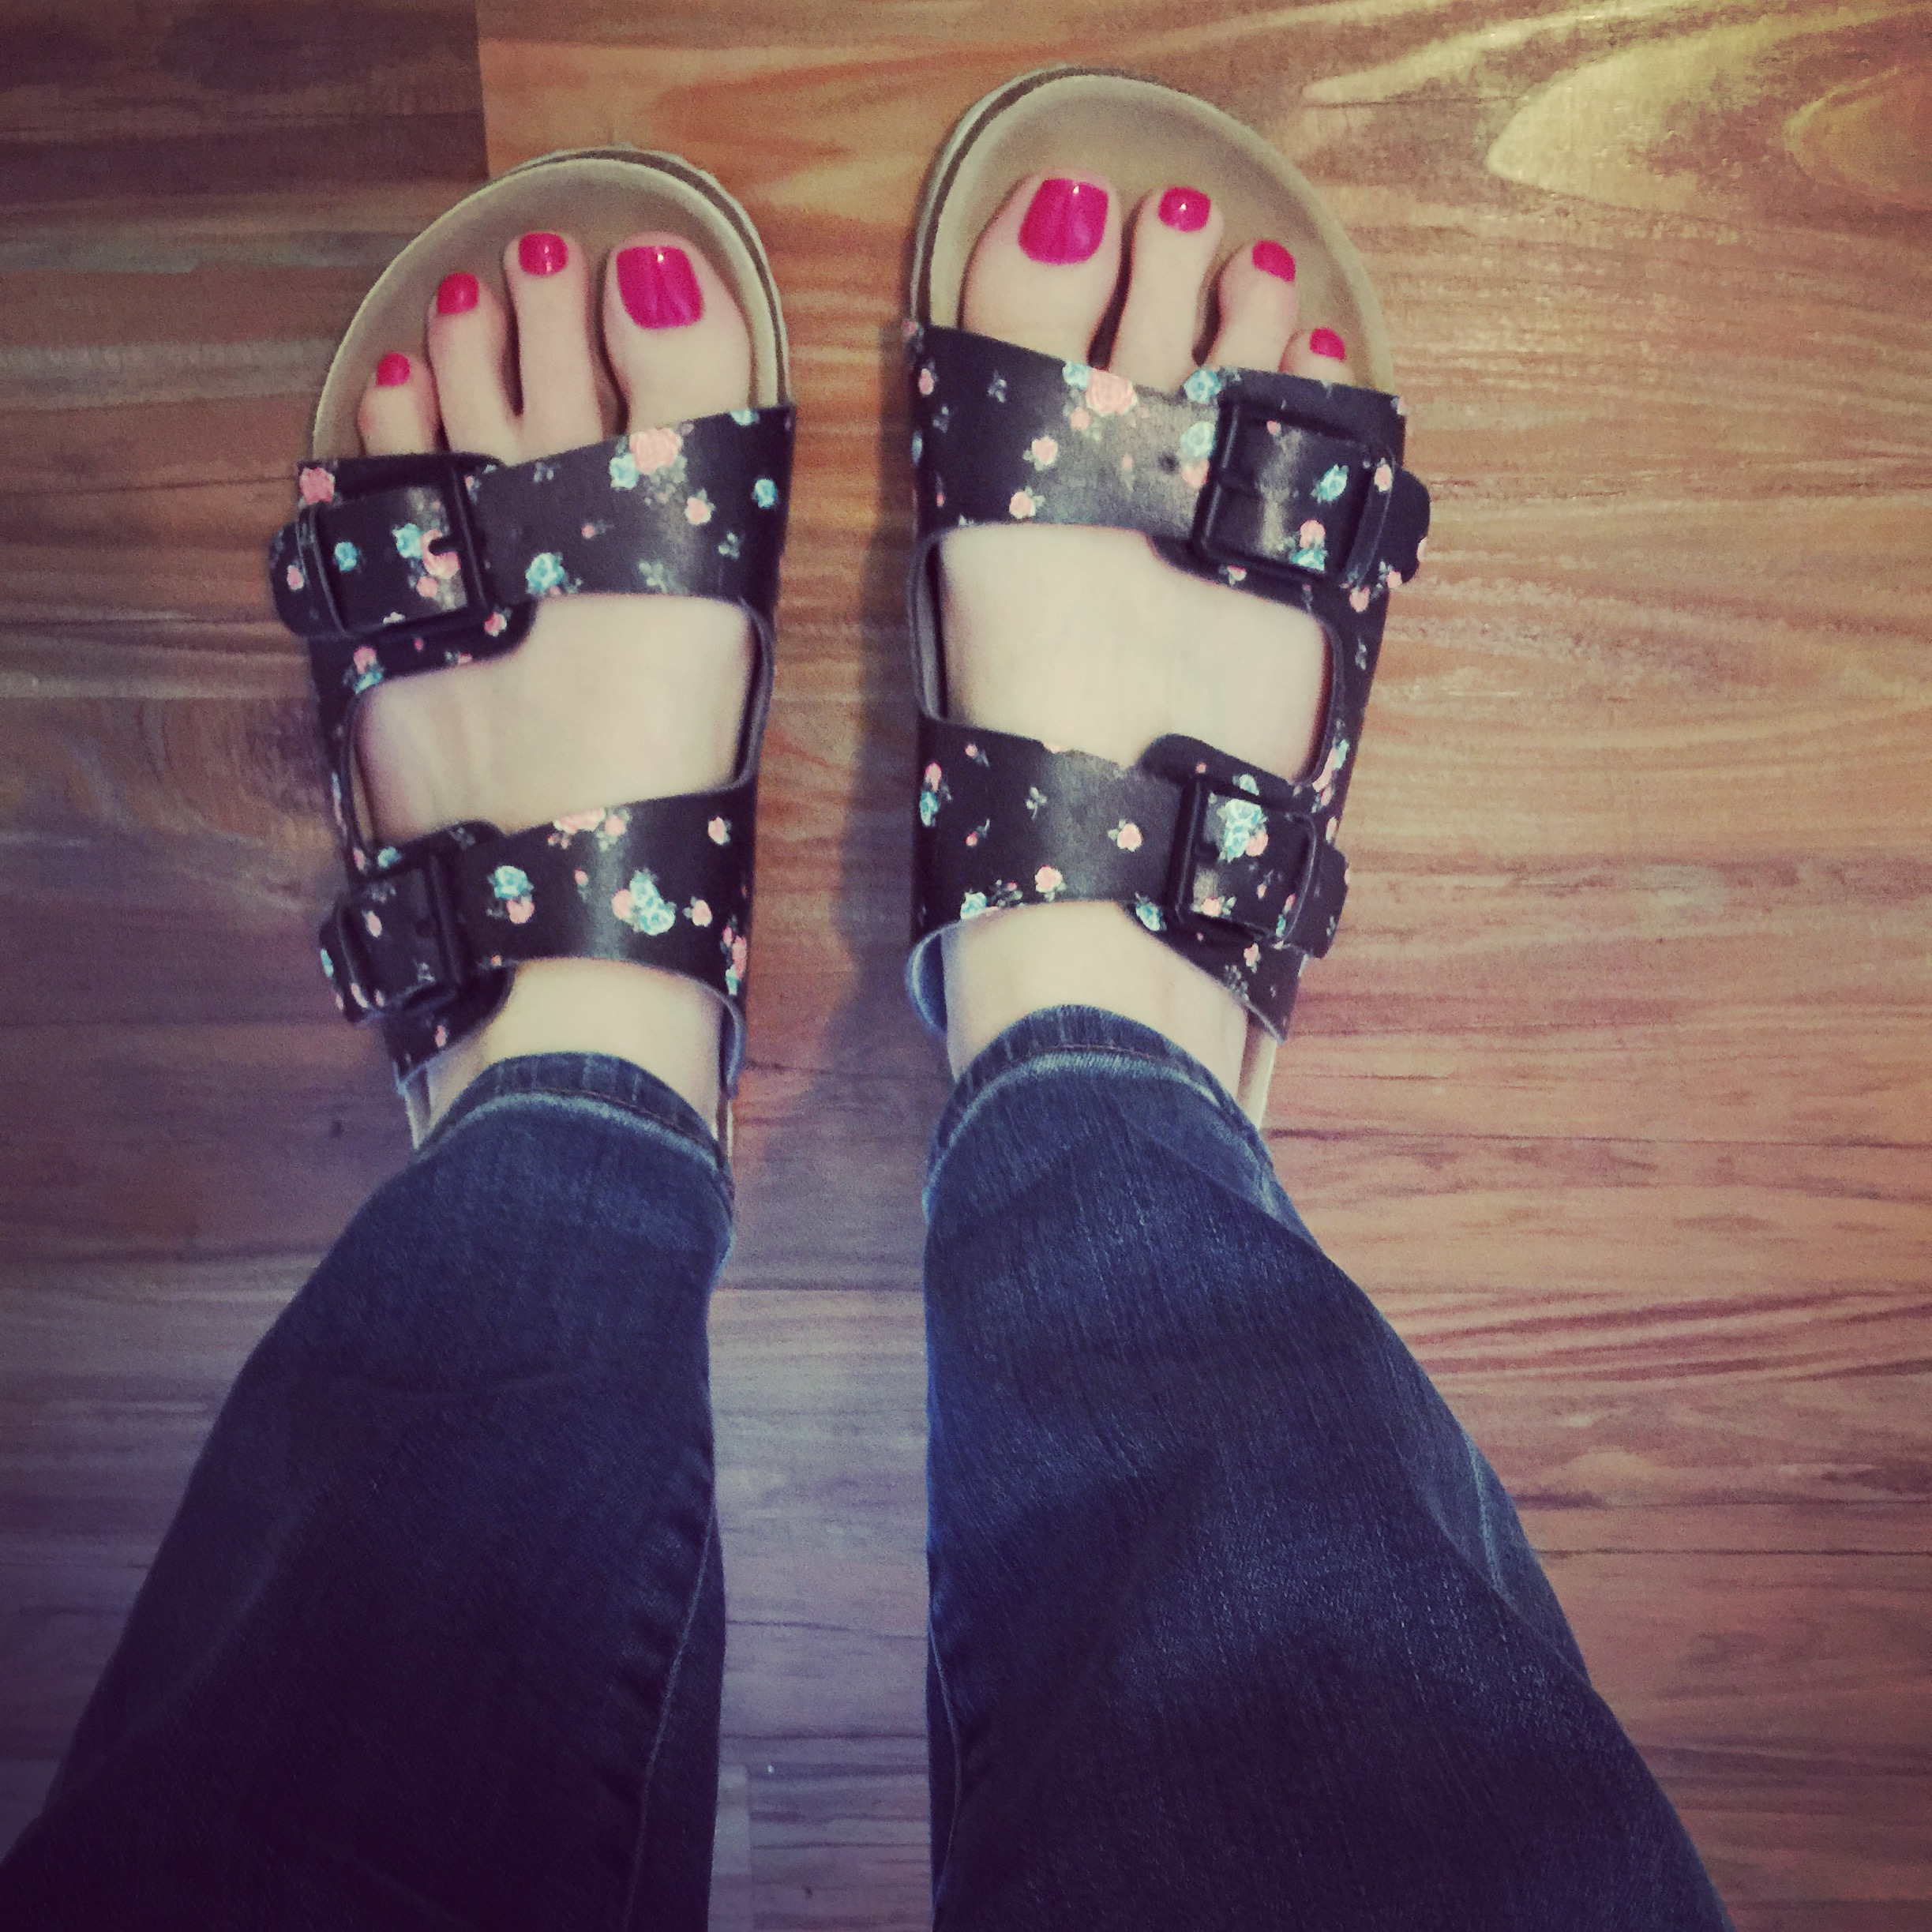 Sandals: American Eagle (this summer but I can't find them online)